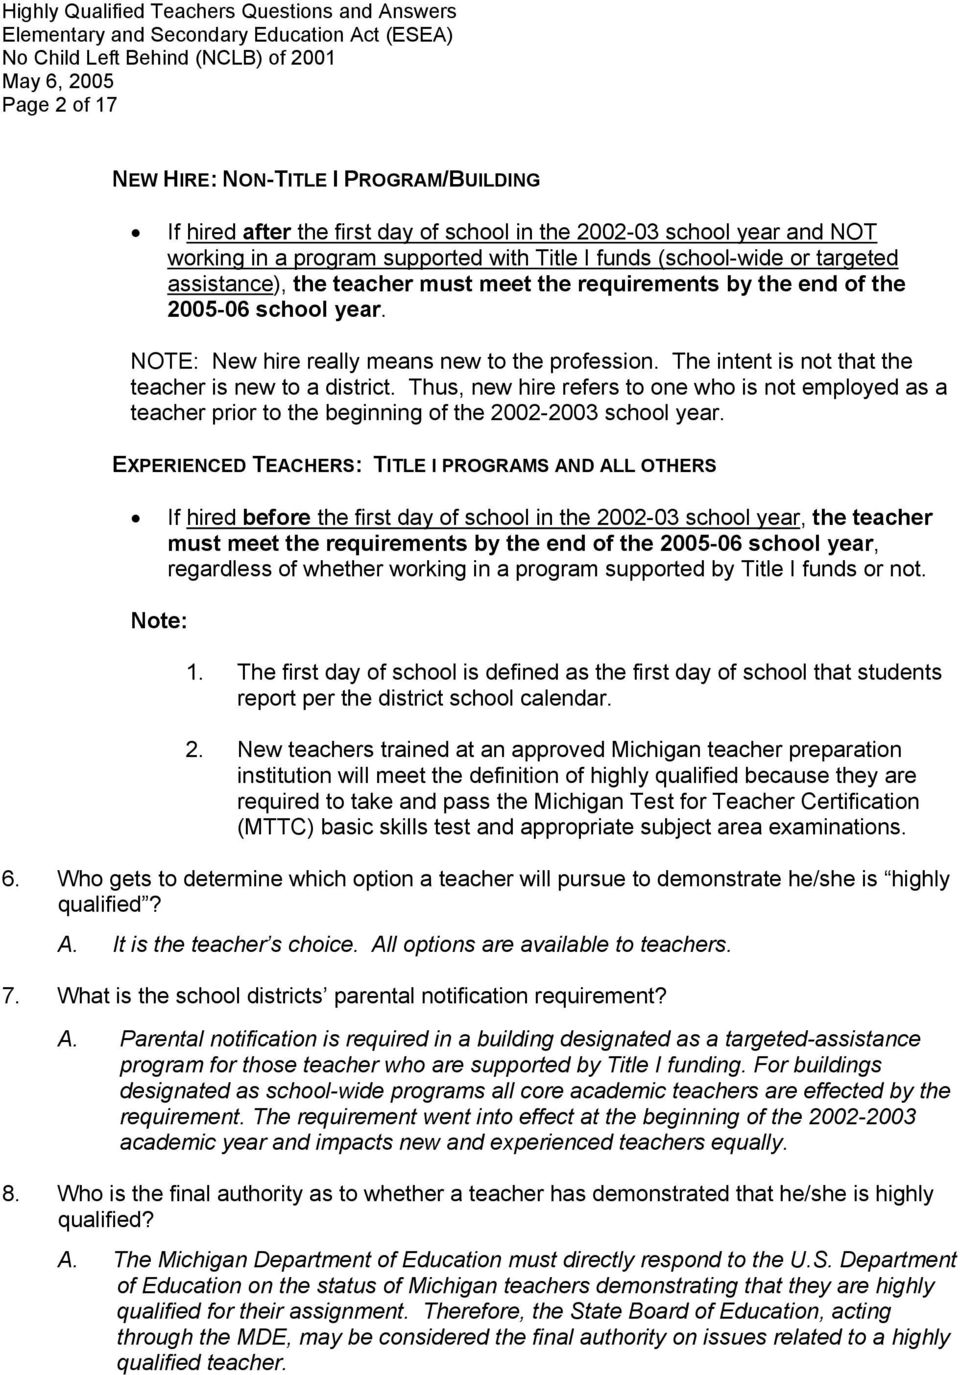 The intent is not that the teacher is new to a district. Thus, new hire refers to one who is not employed as a teacher prior to the beginning of the 2002-2003 school year.